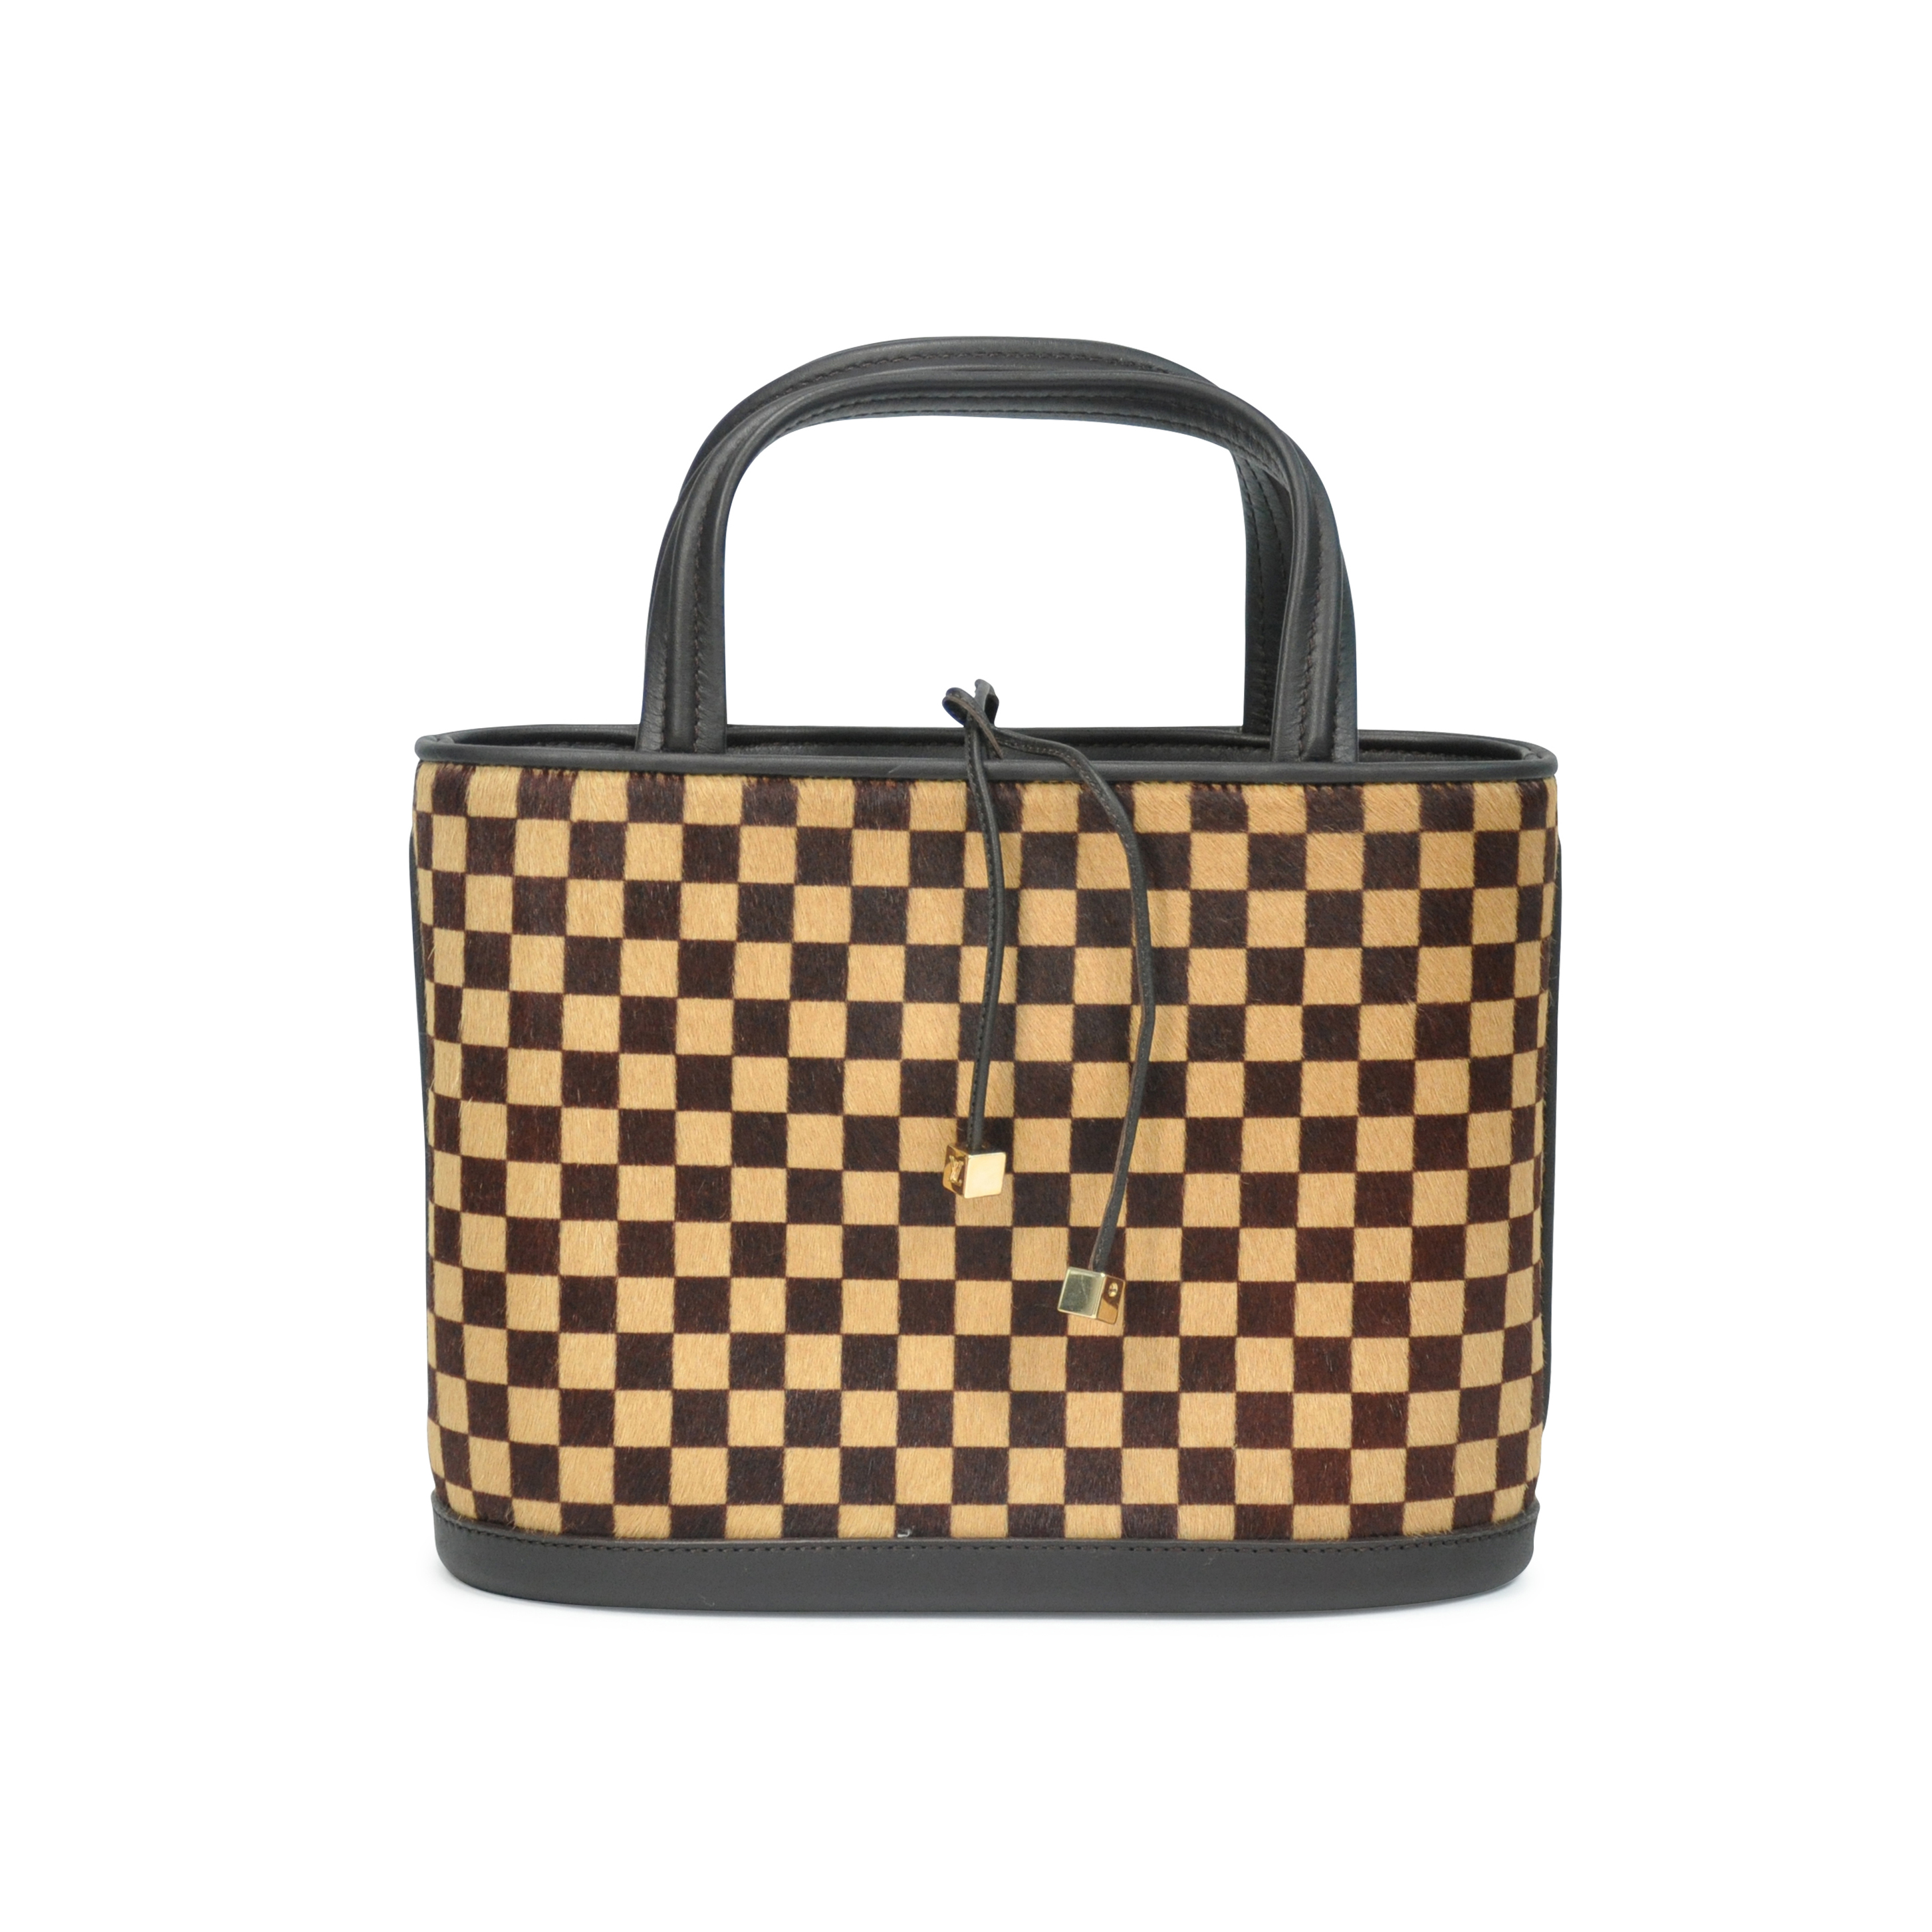 6b3e53eed Lv Damier Bag Collection | Stanford Center for Opportunity Policy in ...